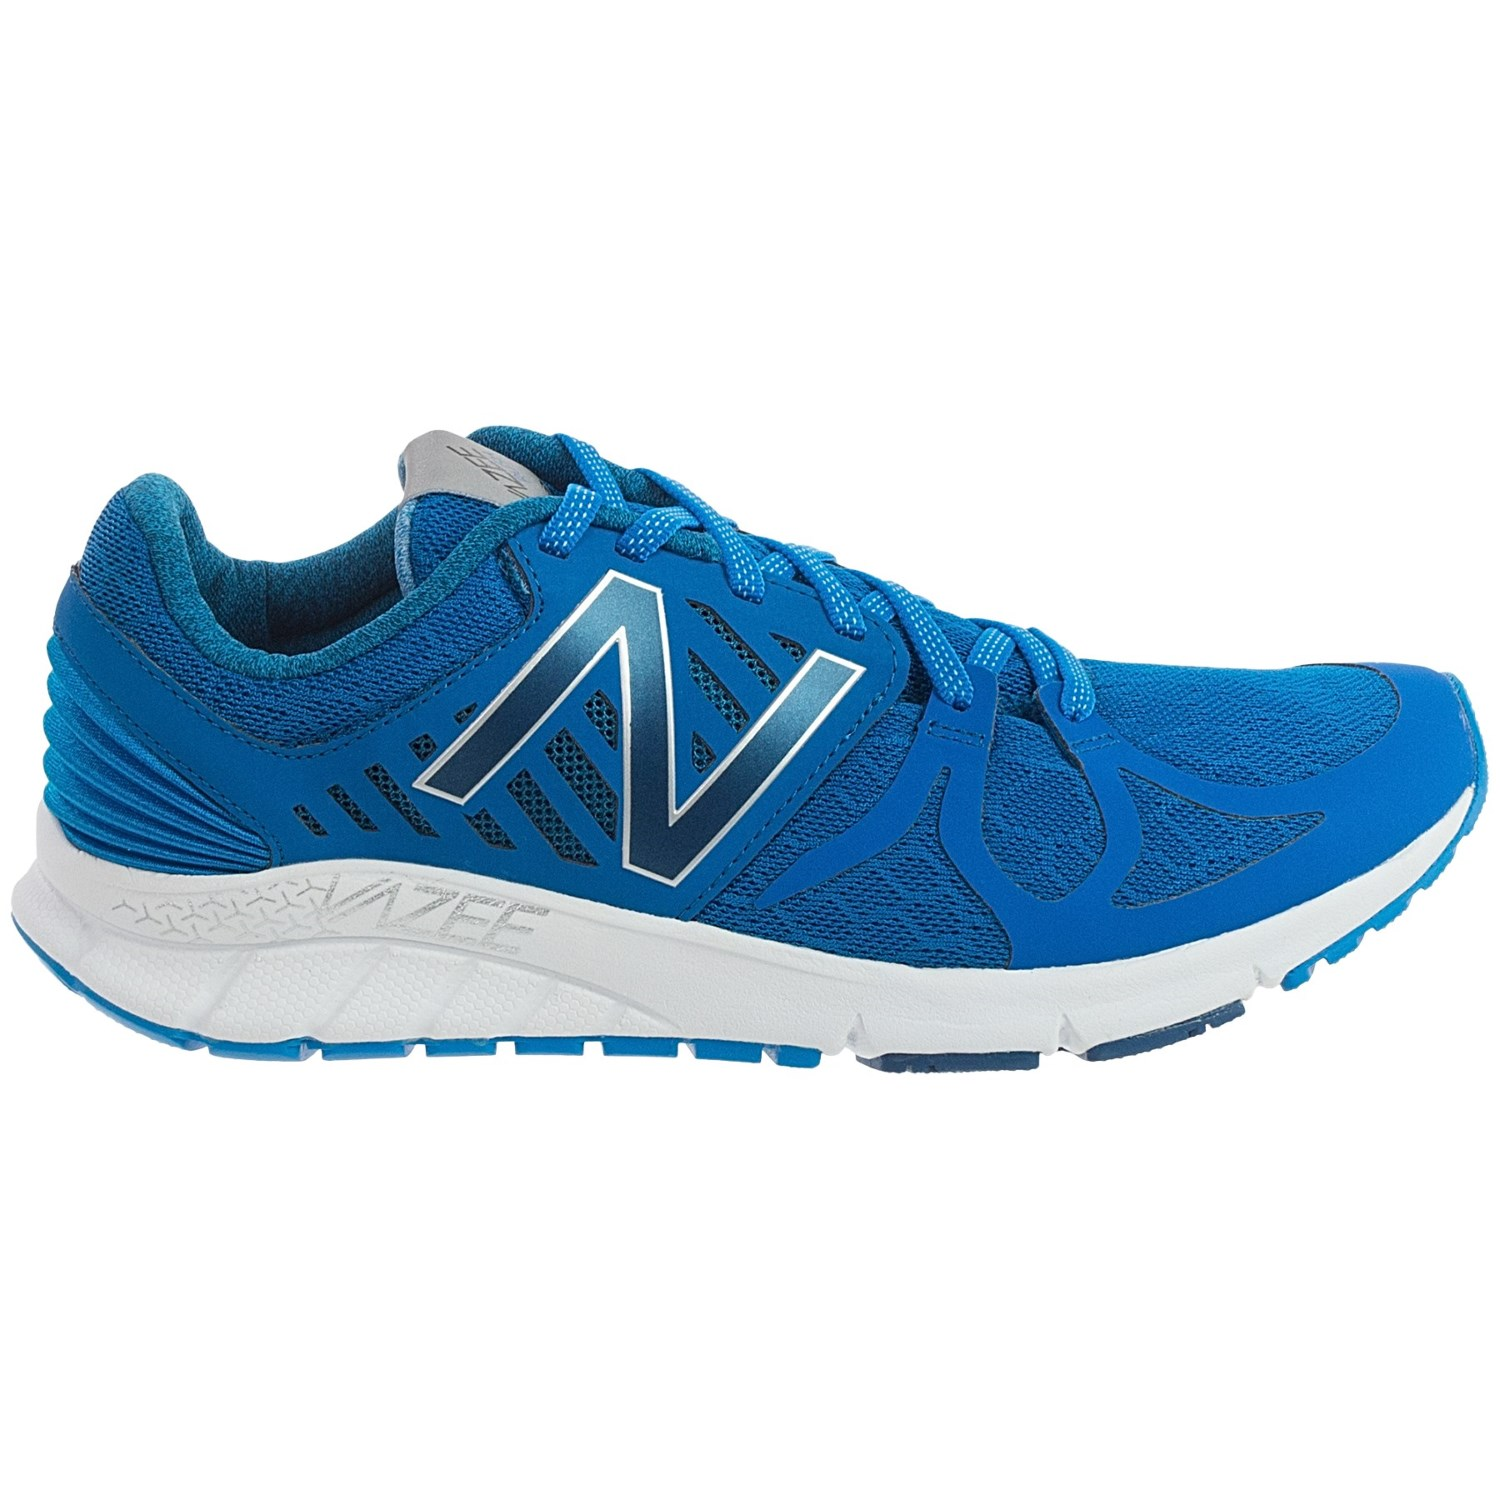 Best Type Of Shoes For Running On The Beach